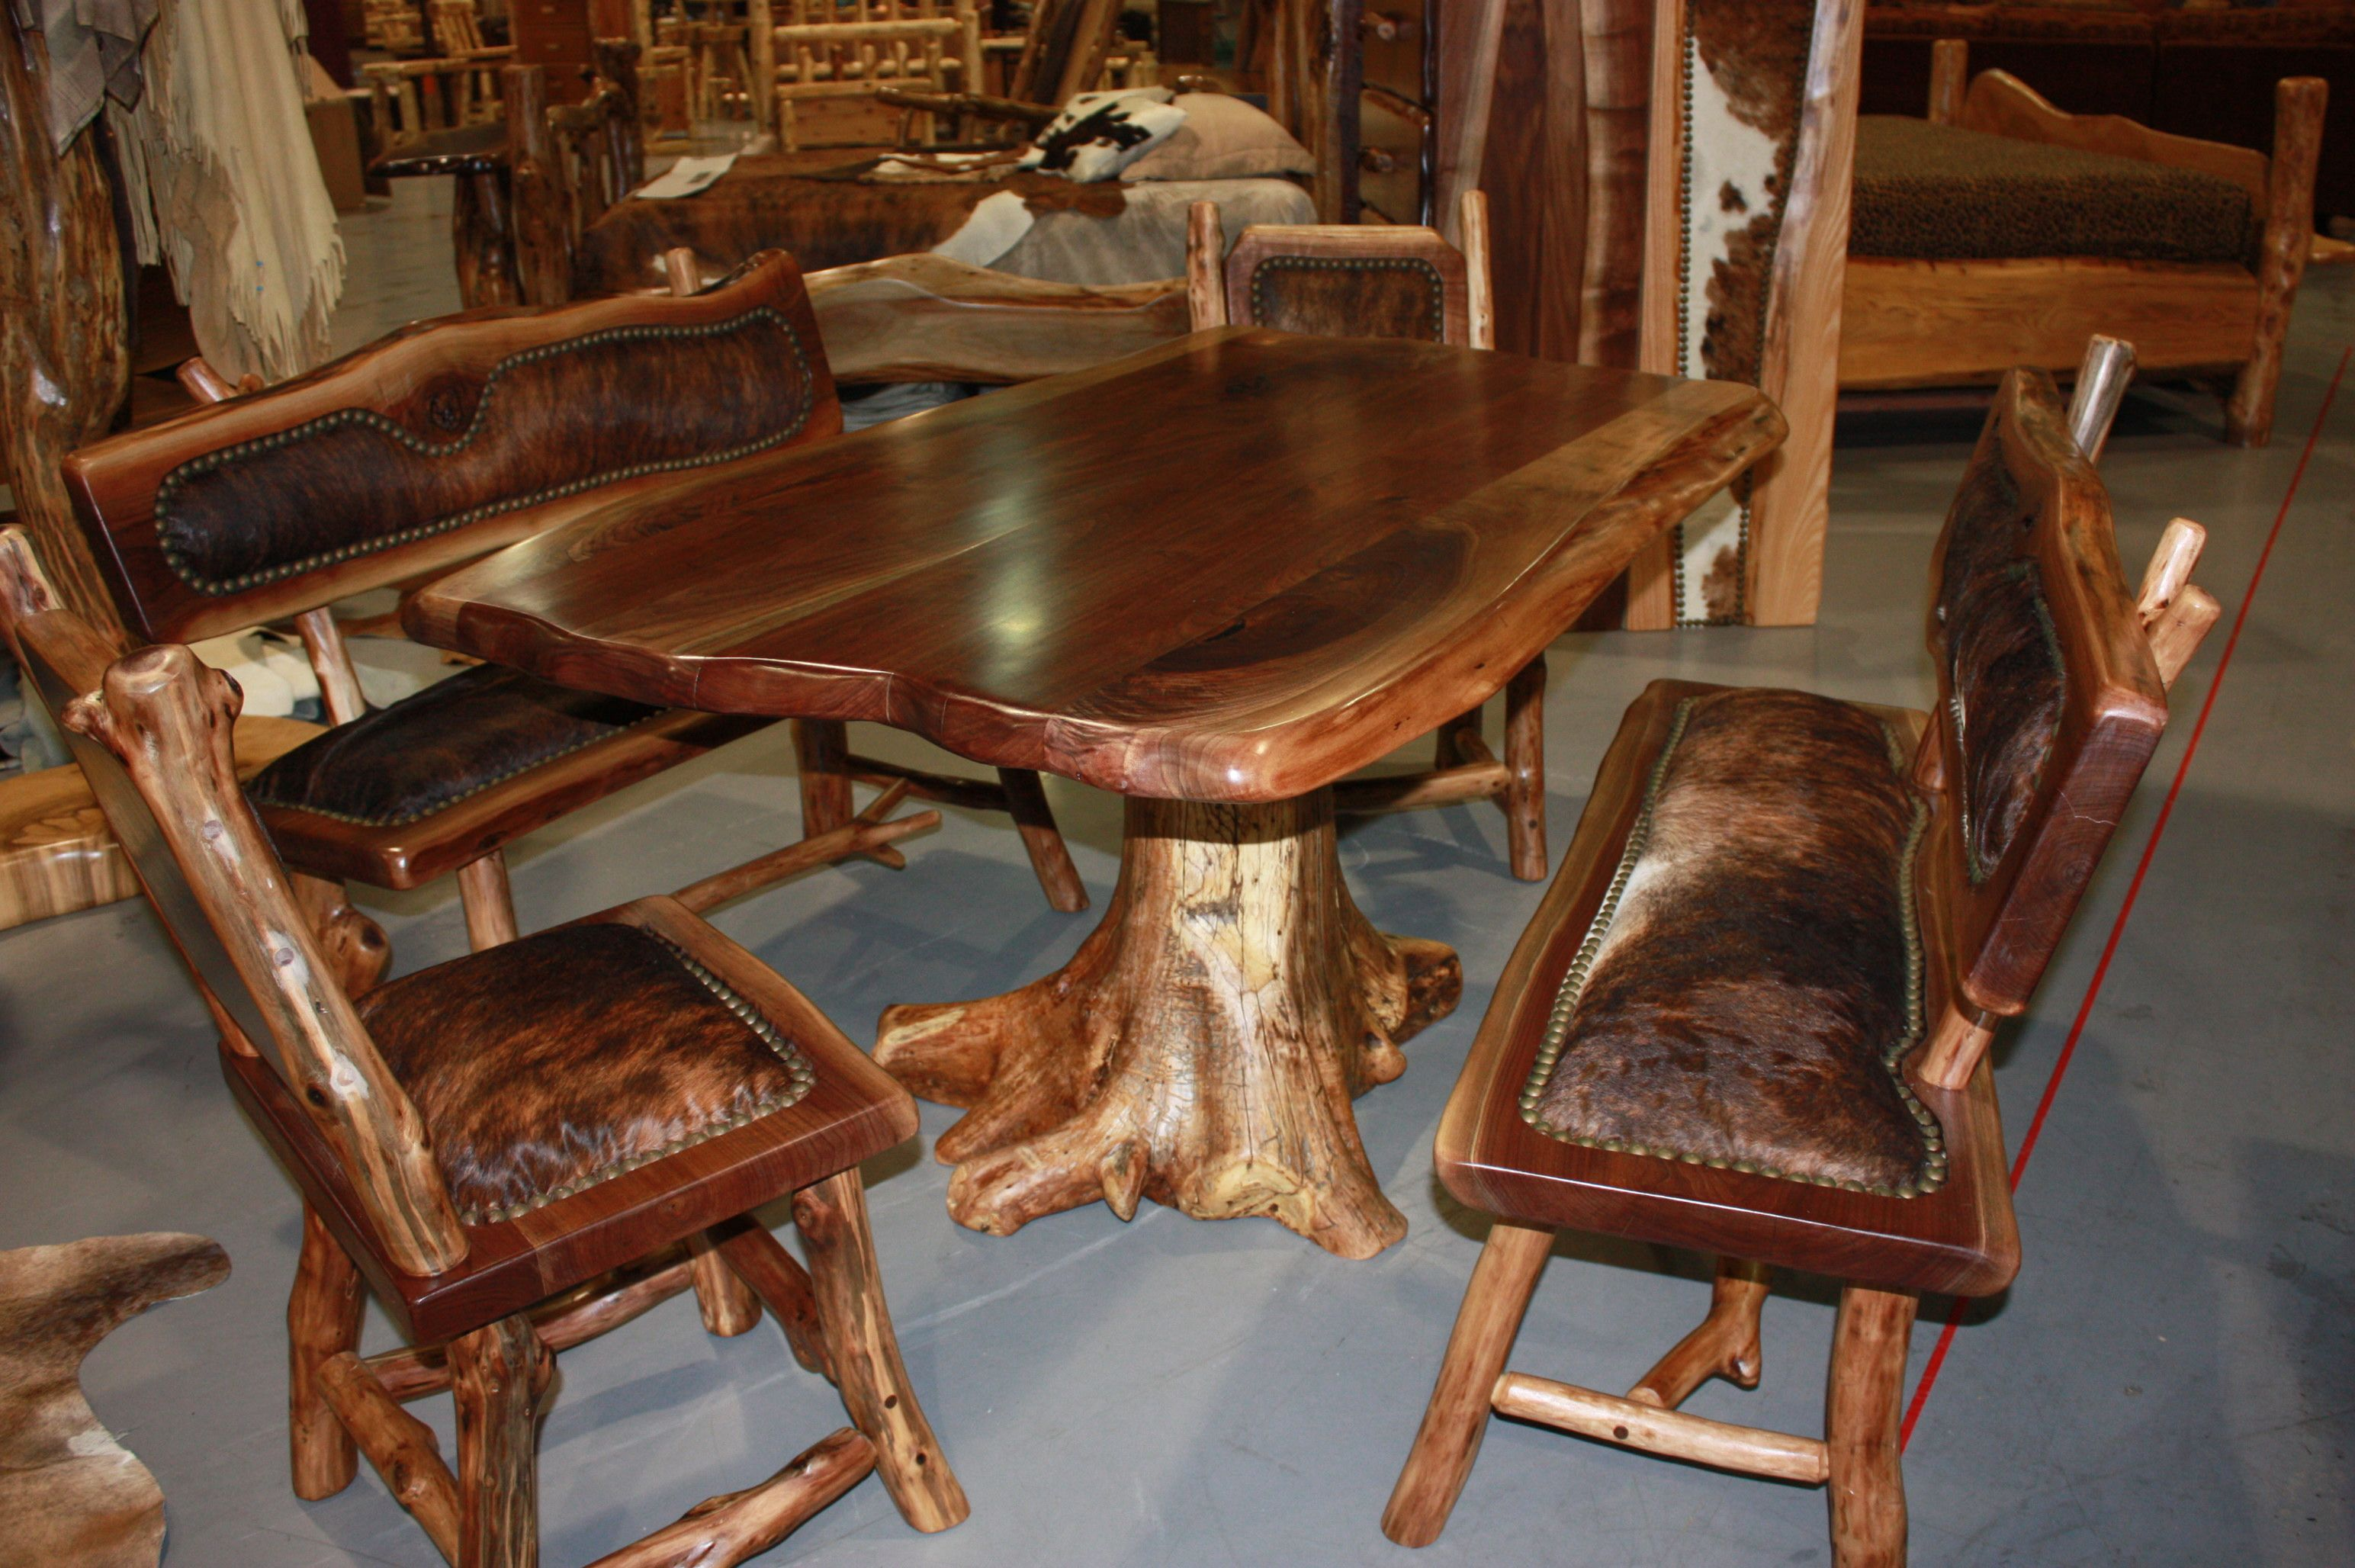 images about rustic furniture on pinterest furniture modern furniture design and rustic log furniture: chair dining room tables rustic chairs